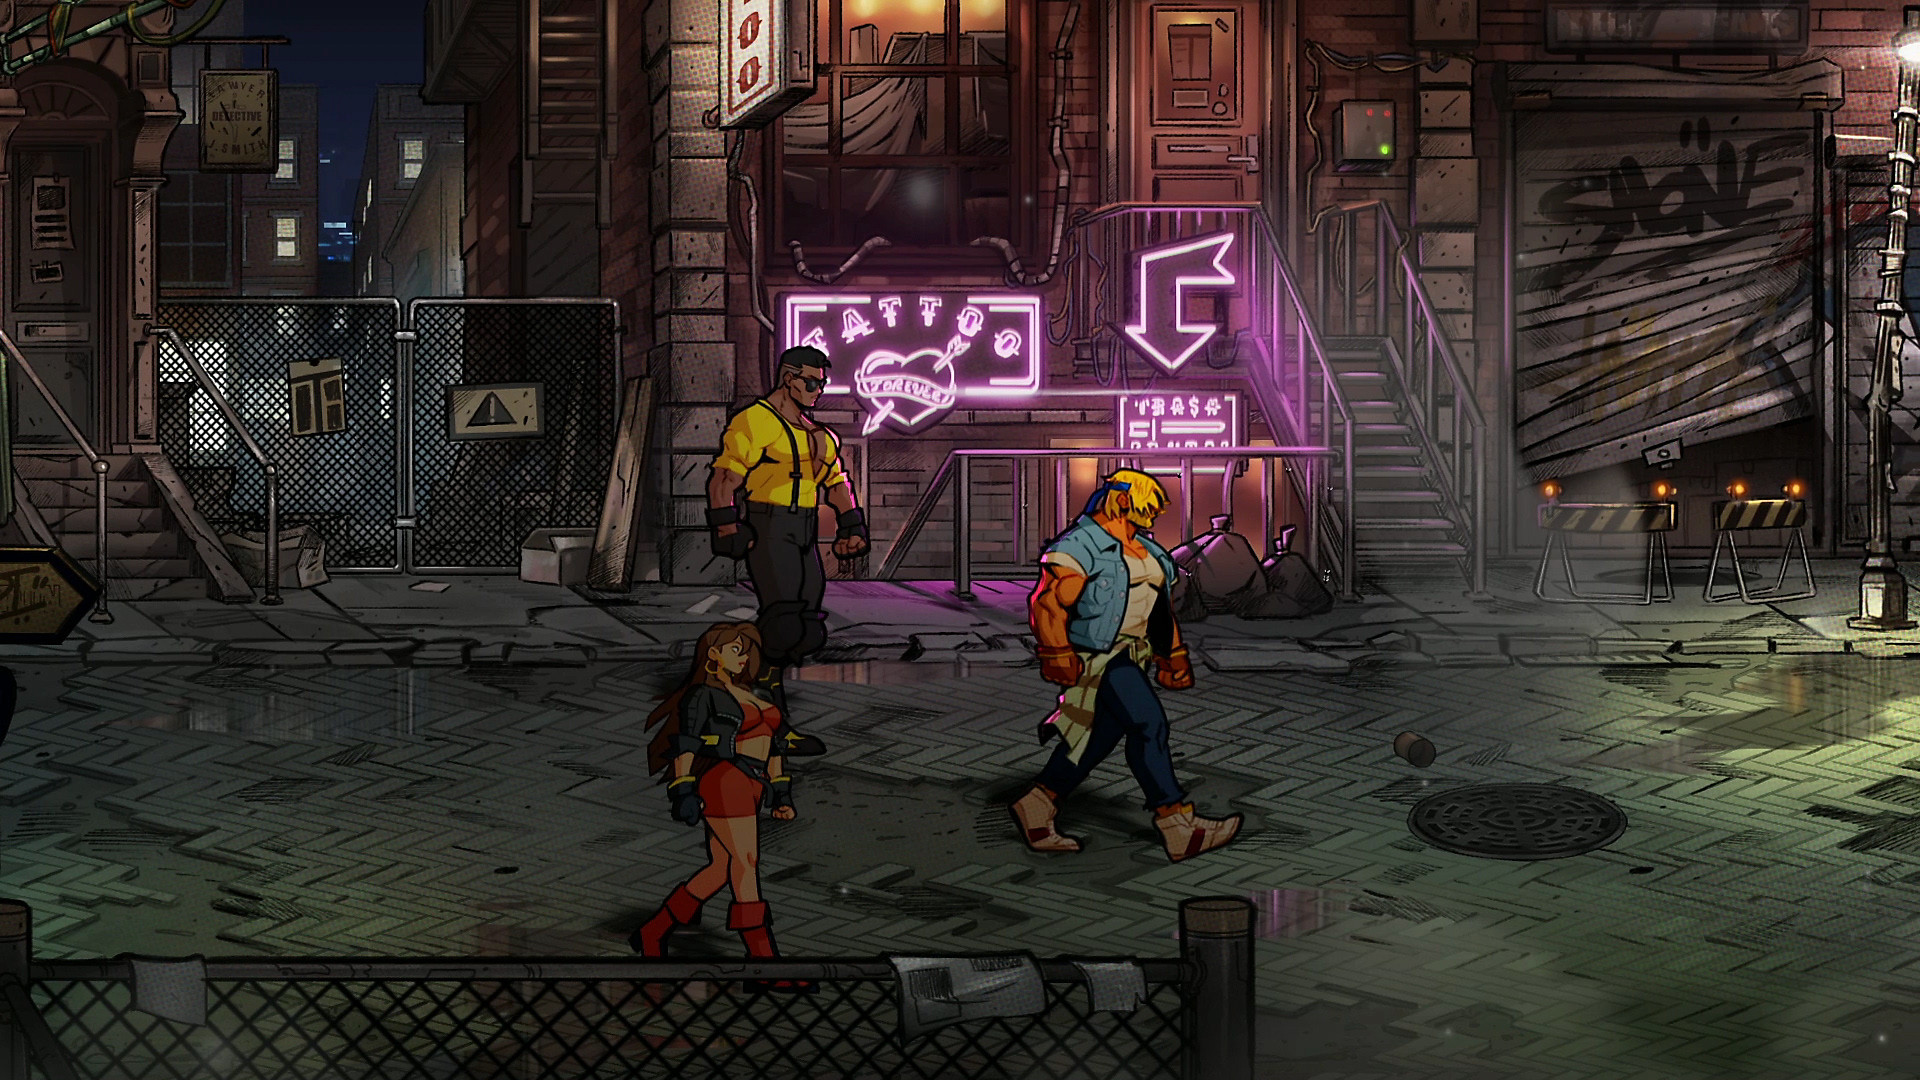 Streets of Rage 4 - Game Overview Screenshot